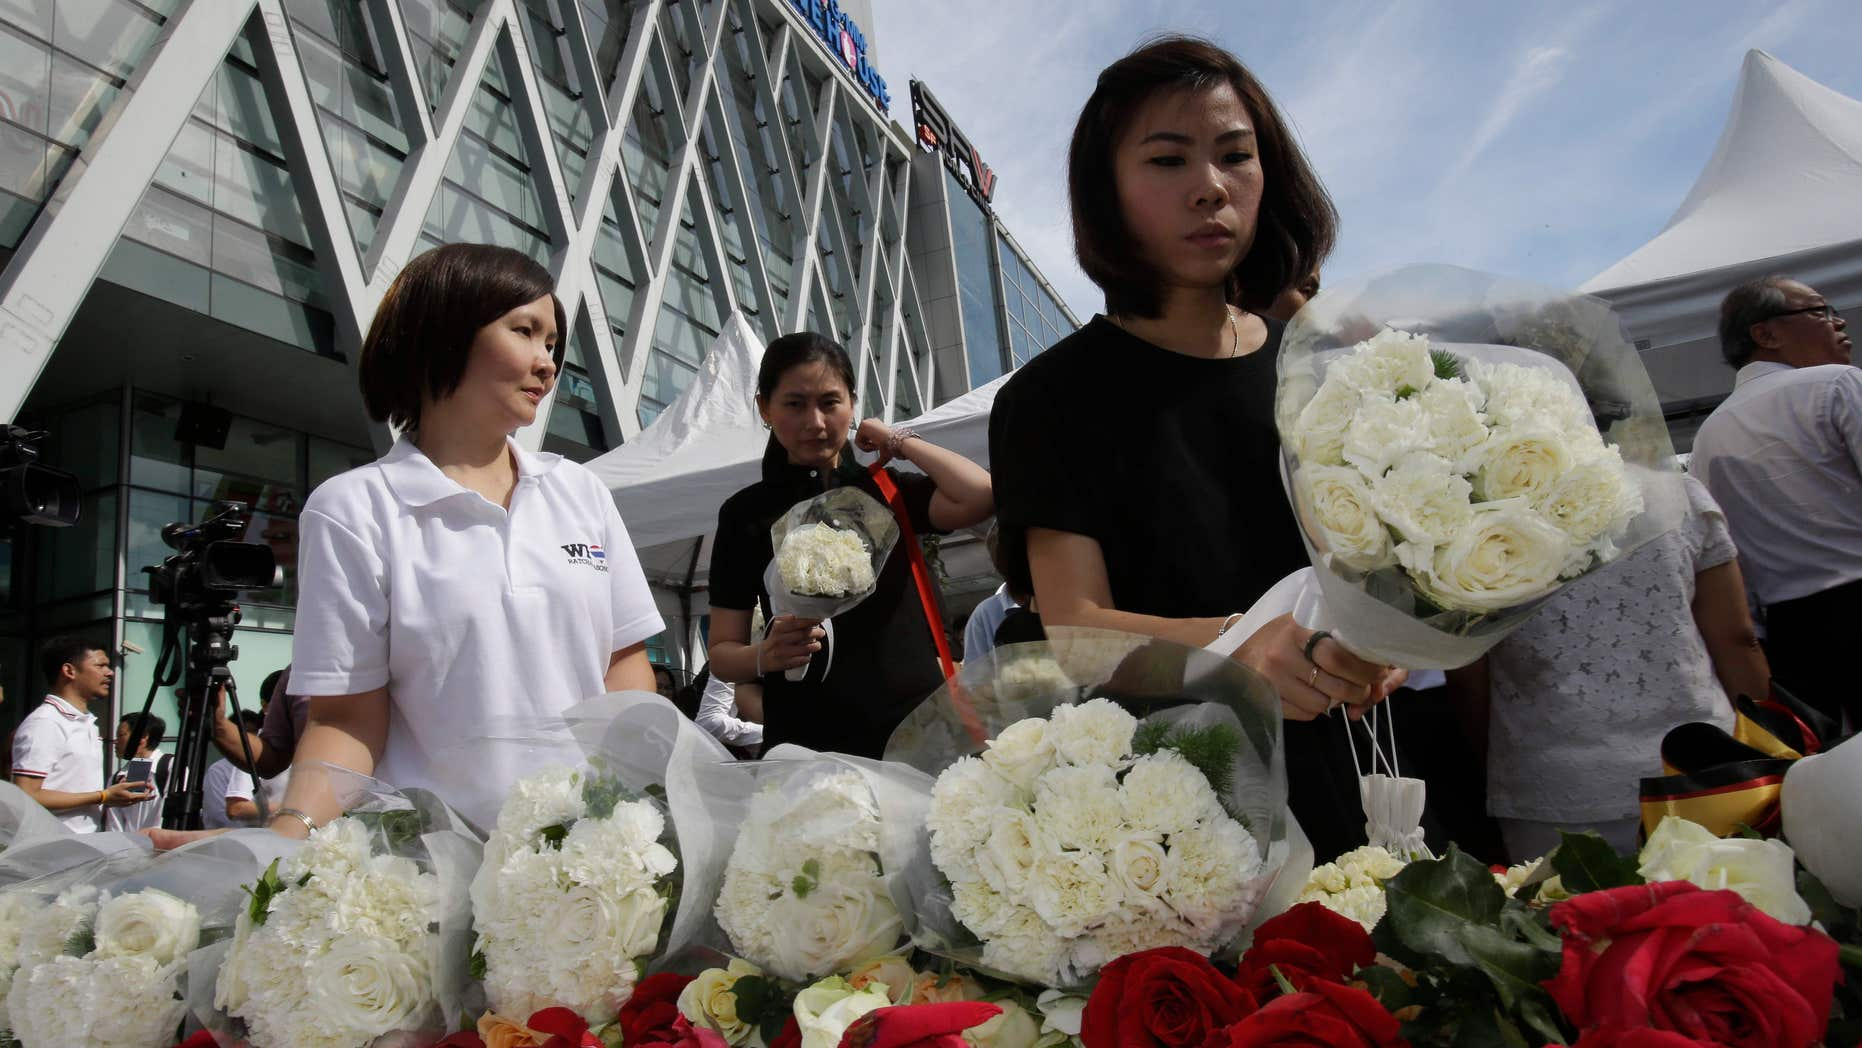 Aug. 21, 2015: People leave flowers at a shopping plaza across from the Erawan Shrine at Rajprasong intersection, the scene of Monday's bombing, for a multi-denominational religious service for victims in Bangkok, Thailand